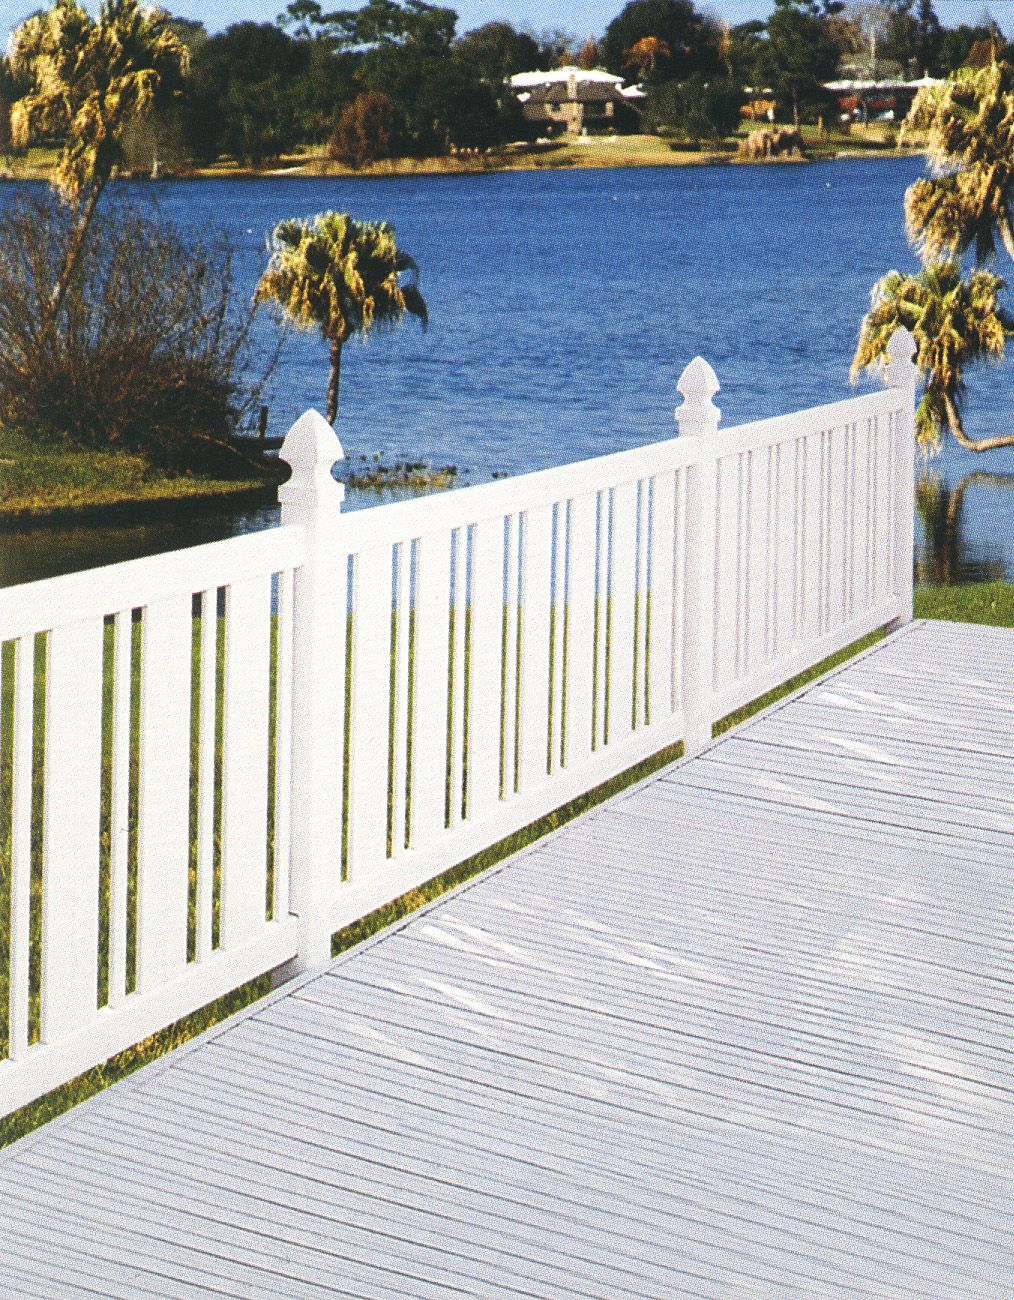 Another option for the low front yard fences - without the cone/pointing things on top